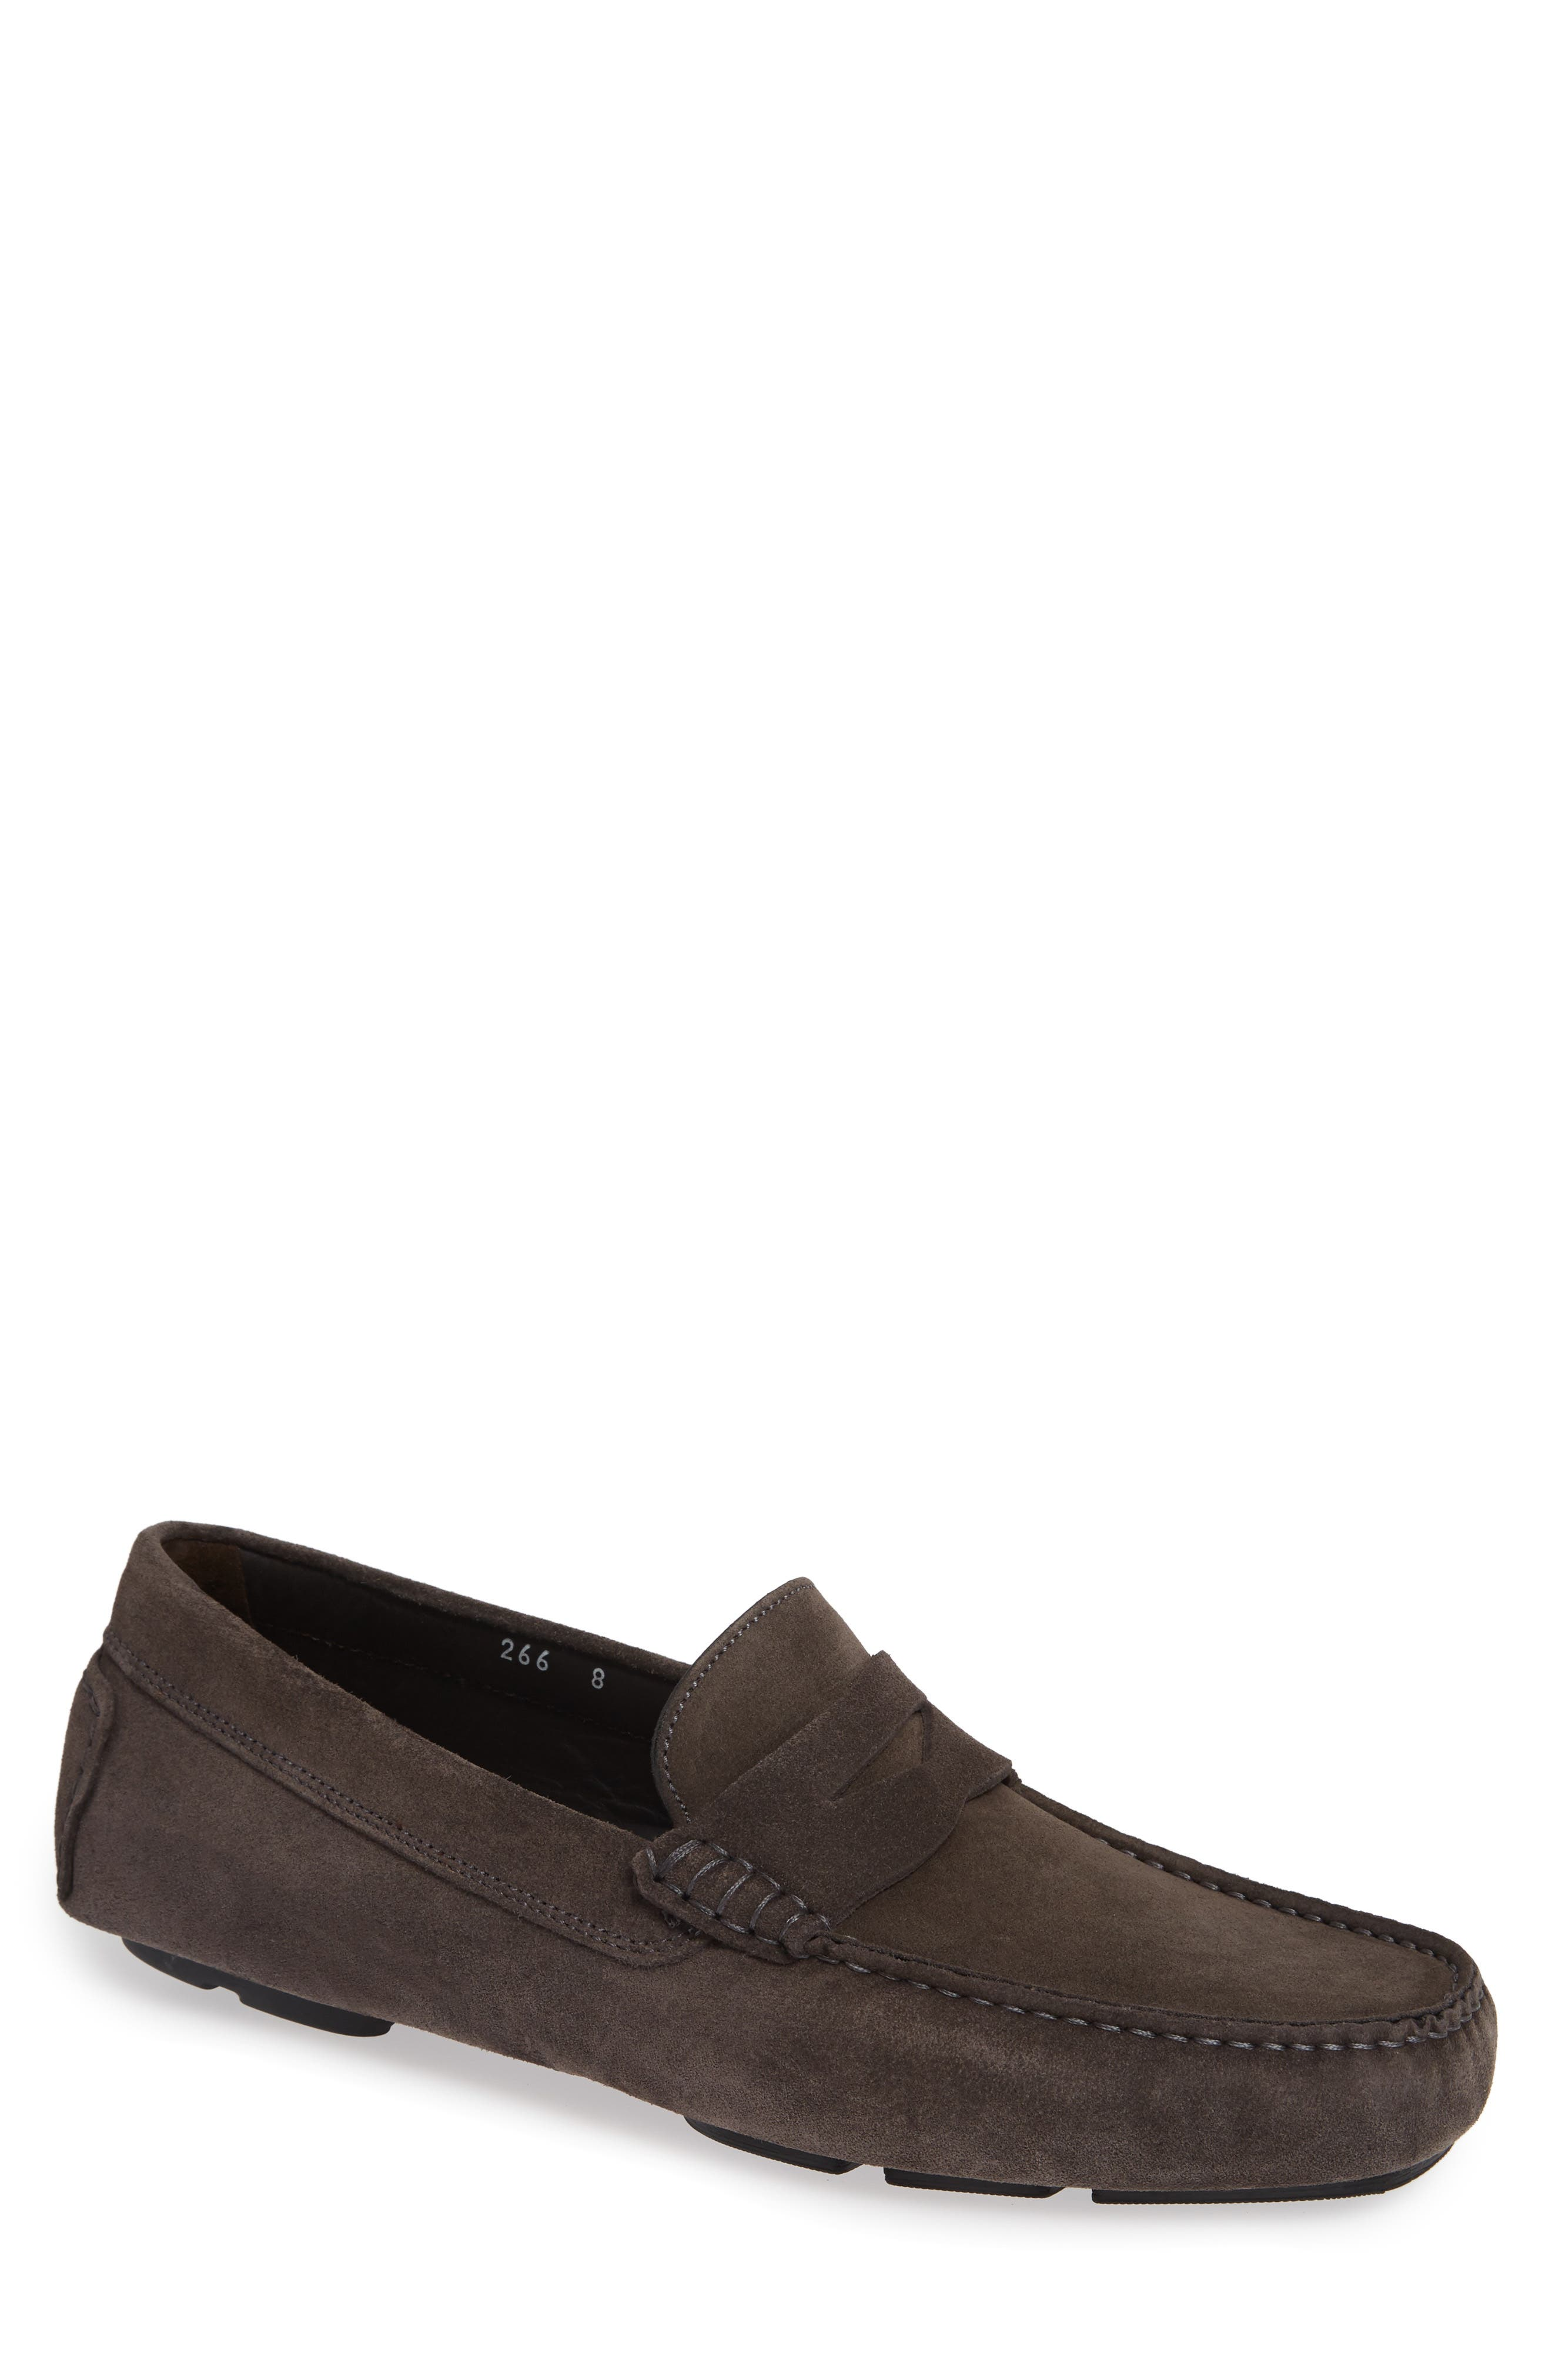 To Boot New York Jackson Penny Driving Loafer, Grey